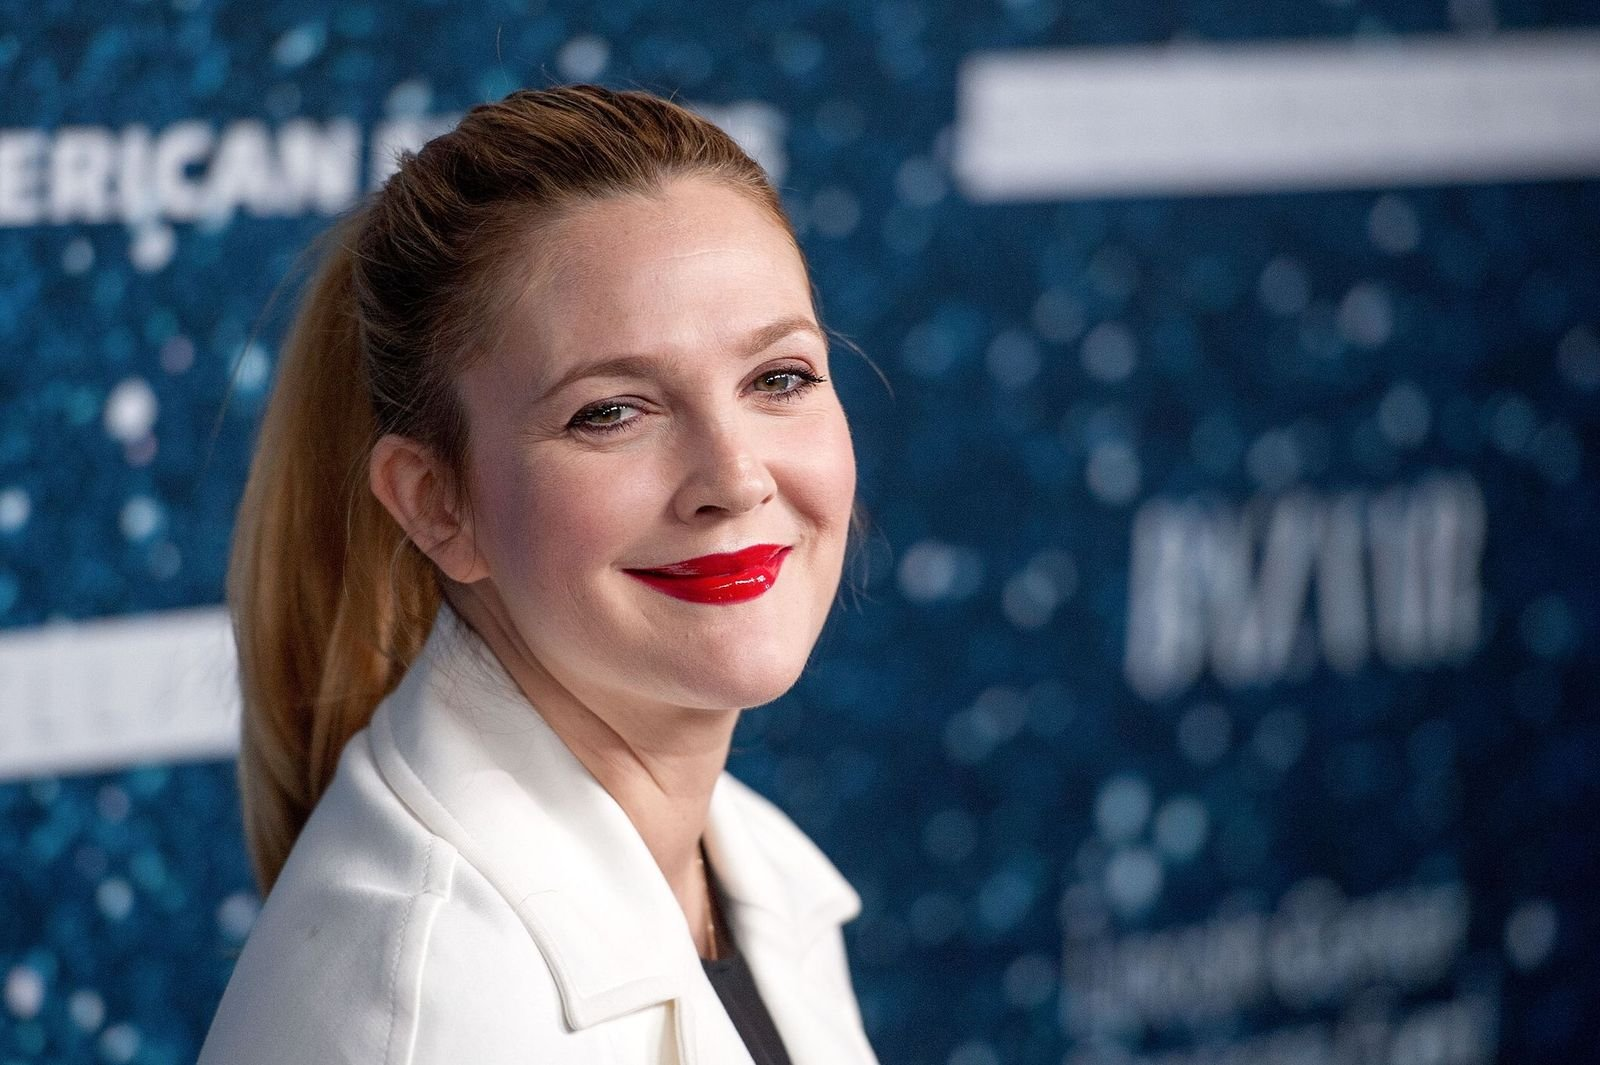 Drew Barrymore attends the 2014 Women's Leadership Award Honoring Stella McCartney at Alice Tully Hall at Lincoln Center on November 13, 2014 in New York City. | Photo: Getty Images.